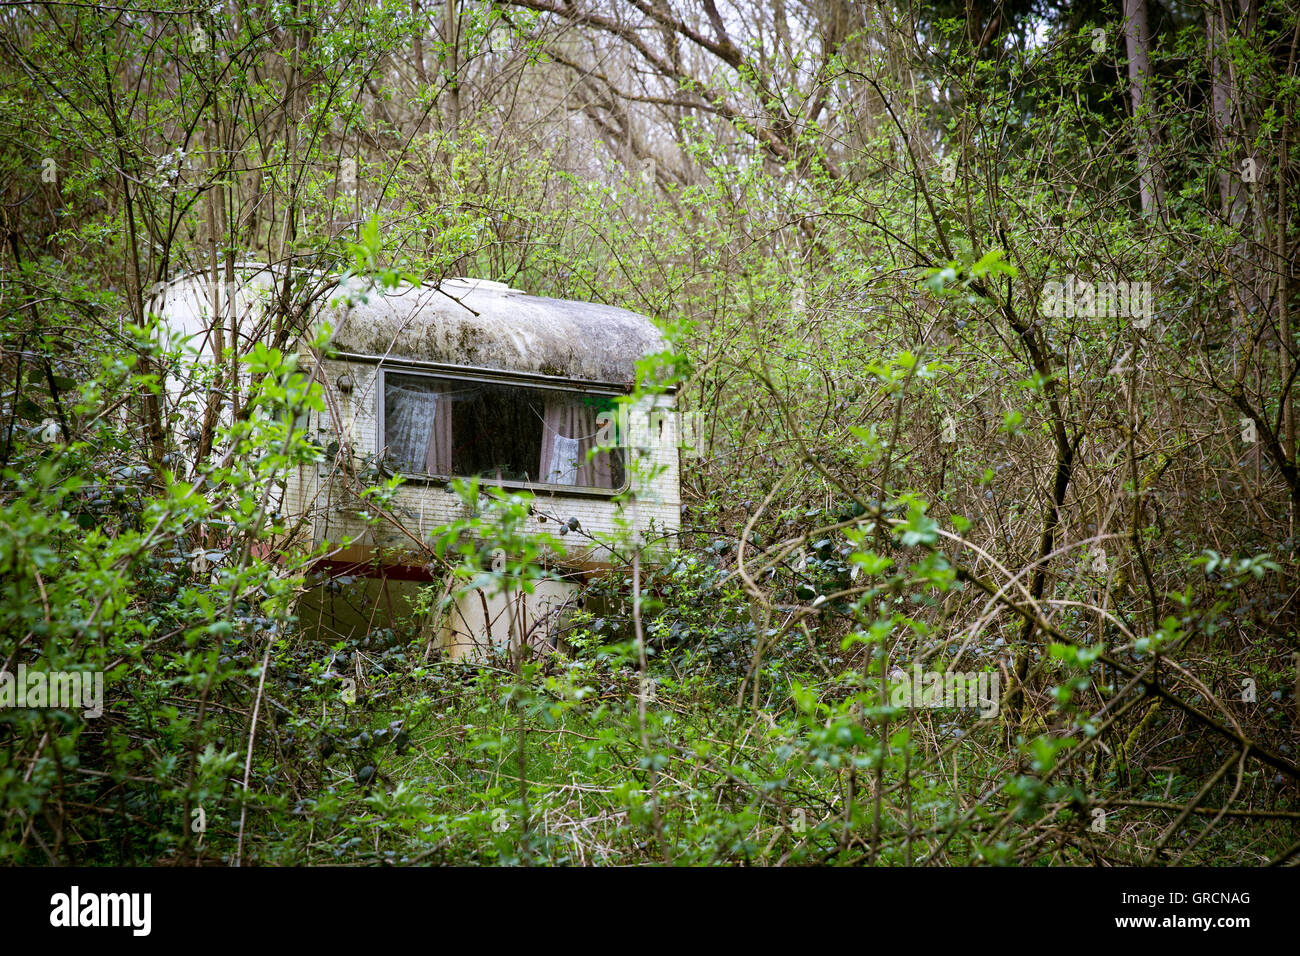 Left Behind Caravans, Lost Place - Stock Image